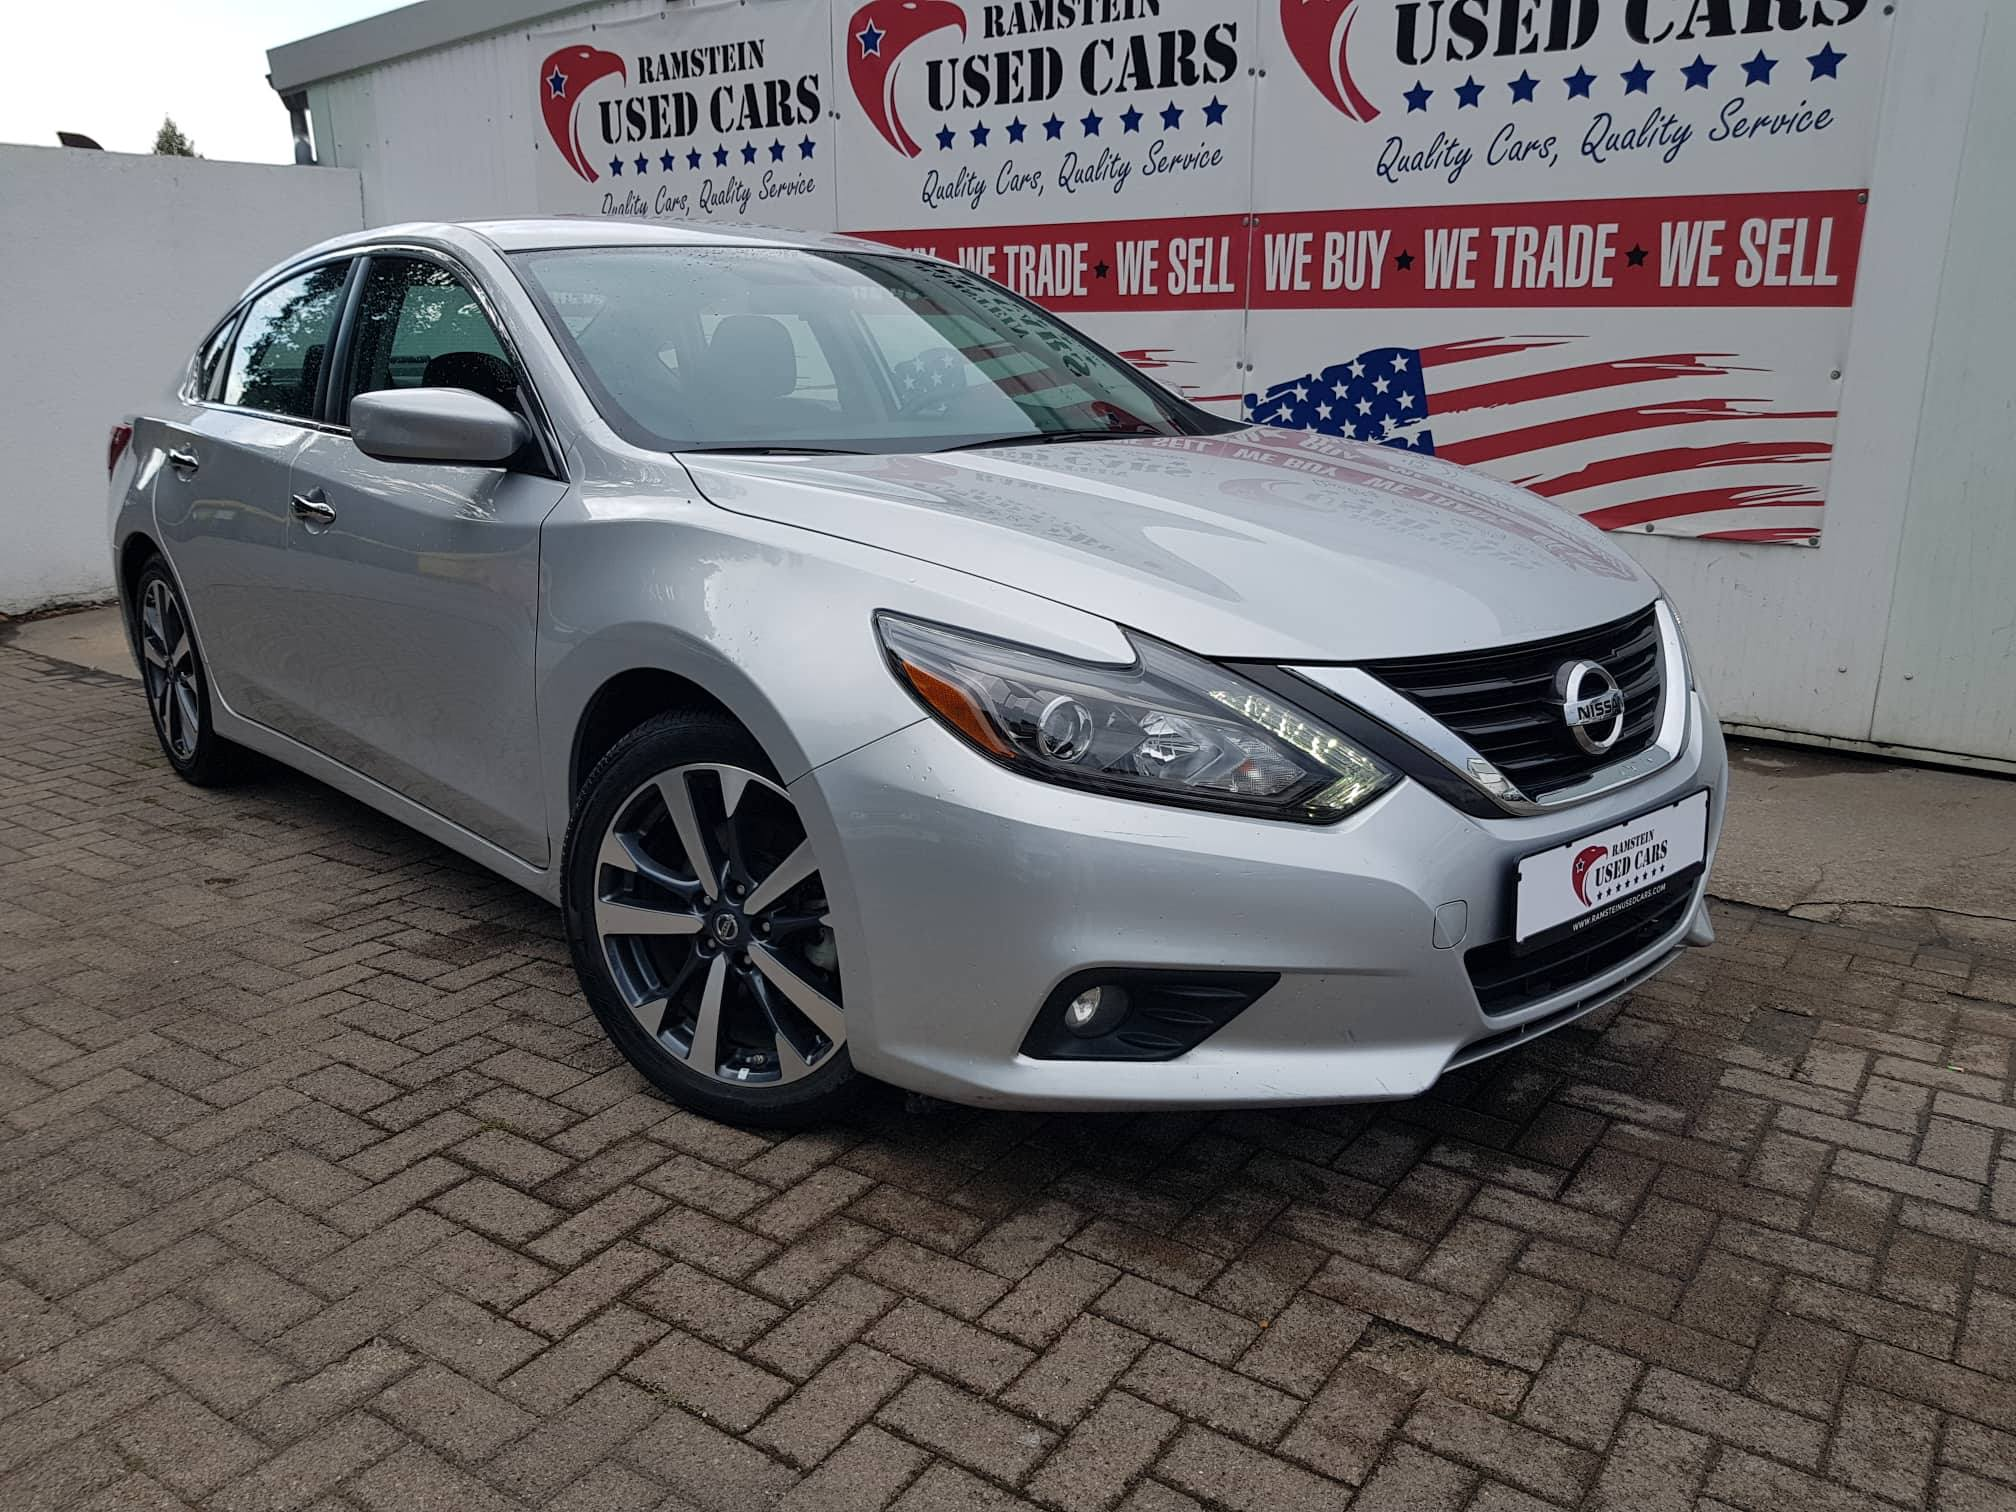 2017 Nissan Altima SR - Ramstein Used Cars